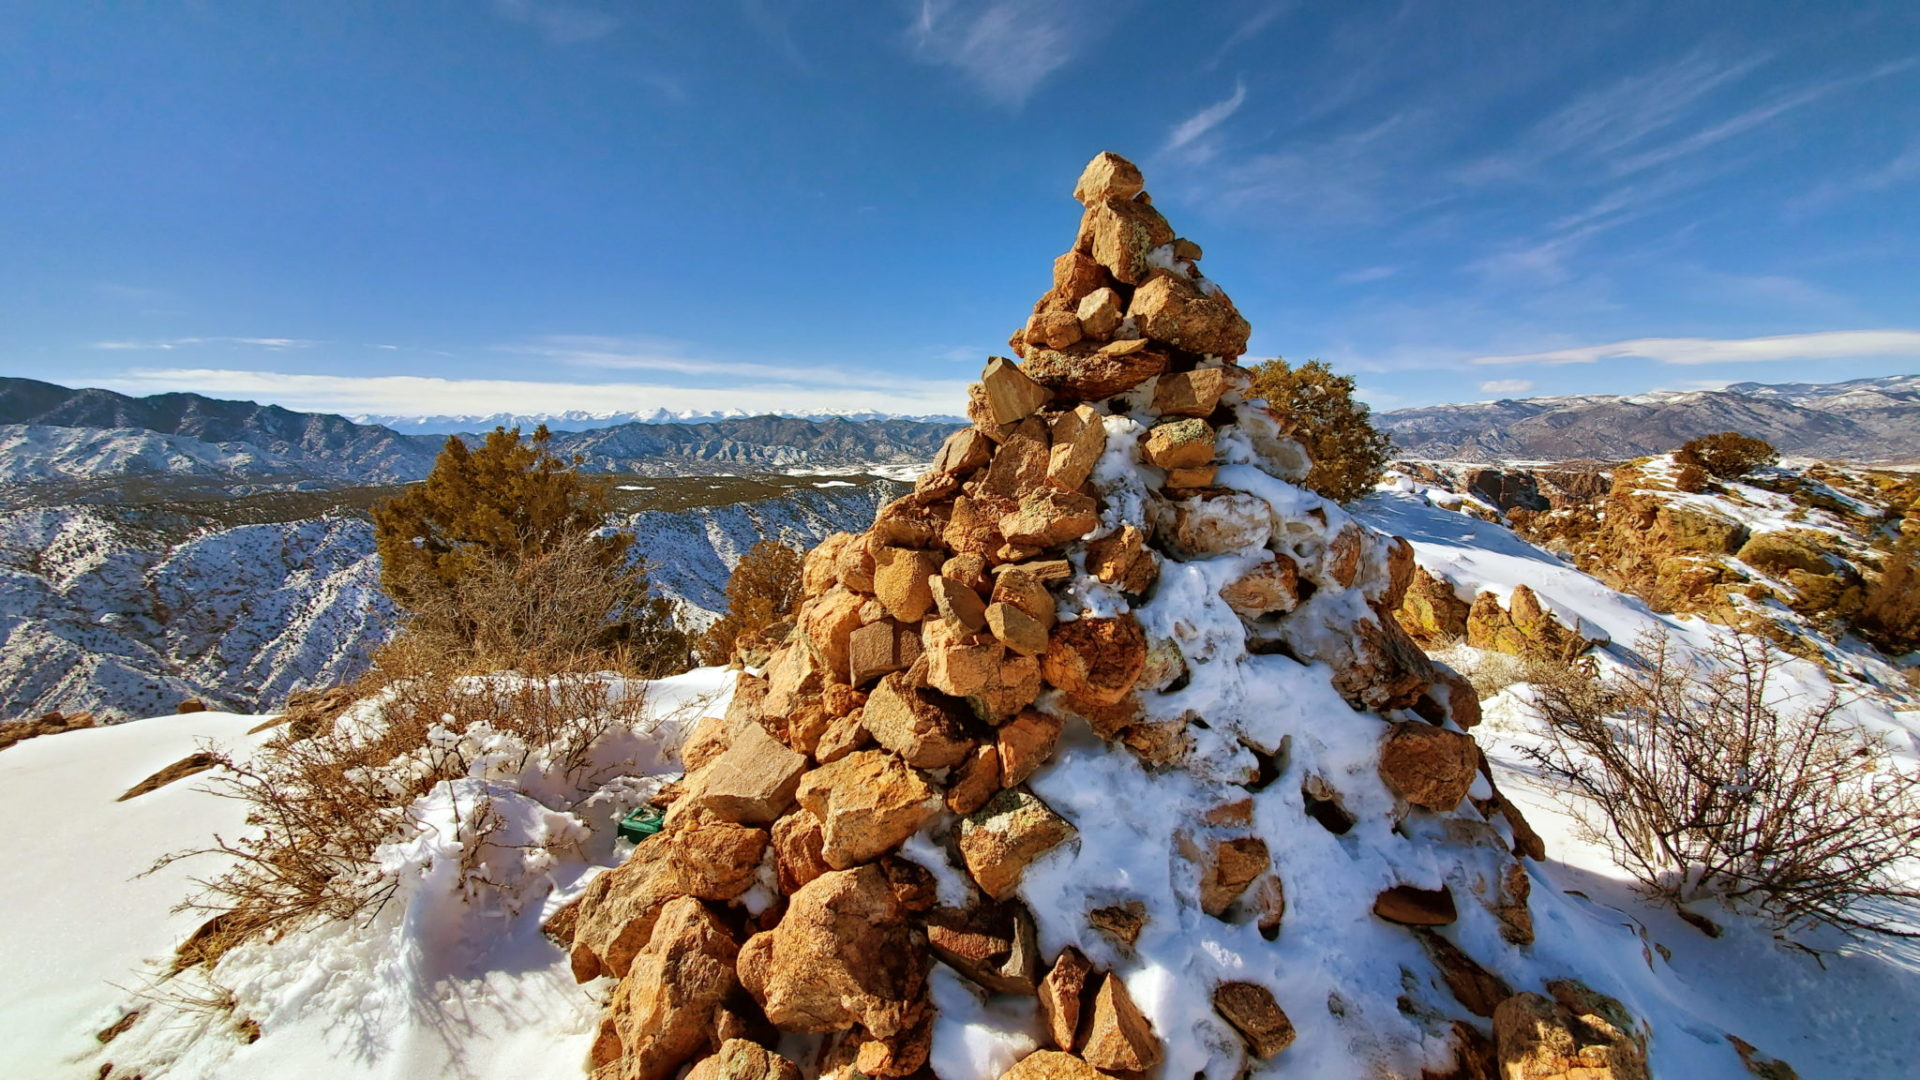 A large cairn at the summit